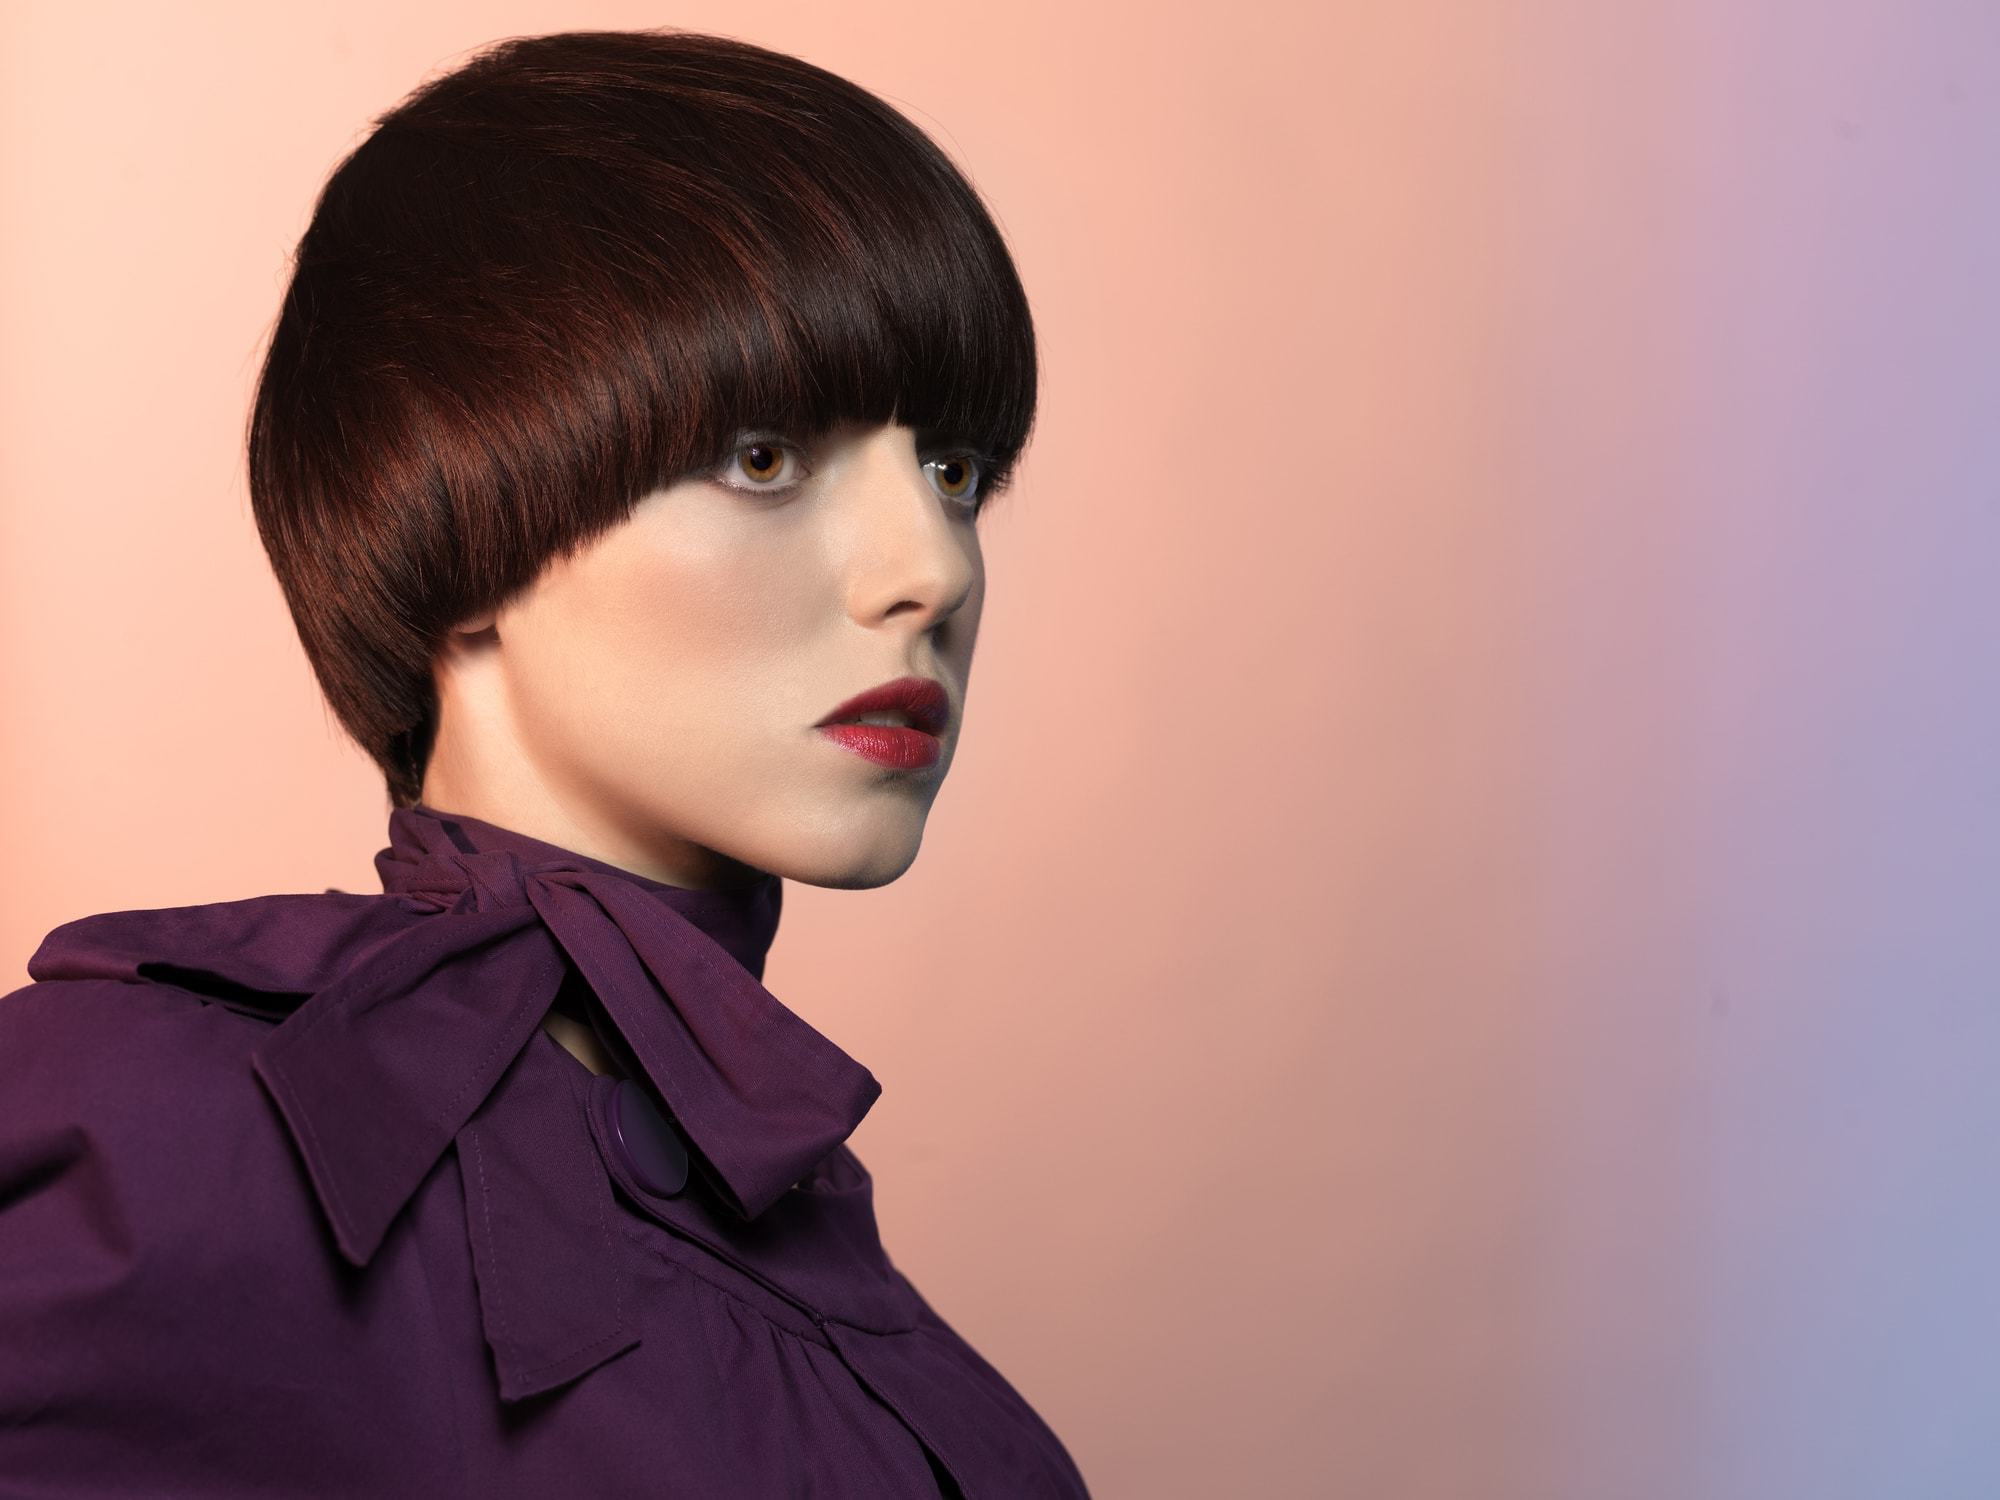 20 Long Pixie Haircut Ideas To Consider Pertaining To Sexy Long Pixie Hairstyles With Babylights (View 10 of 20)